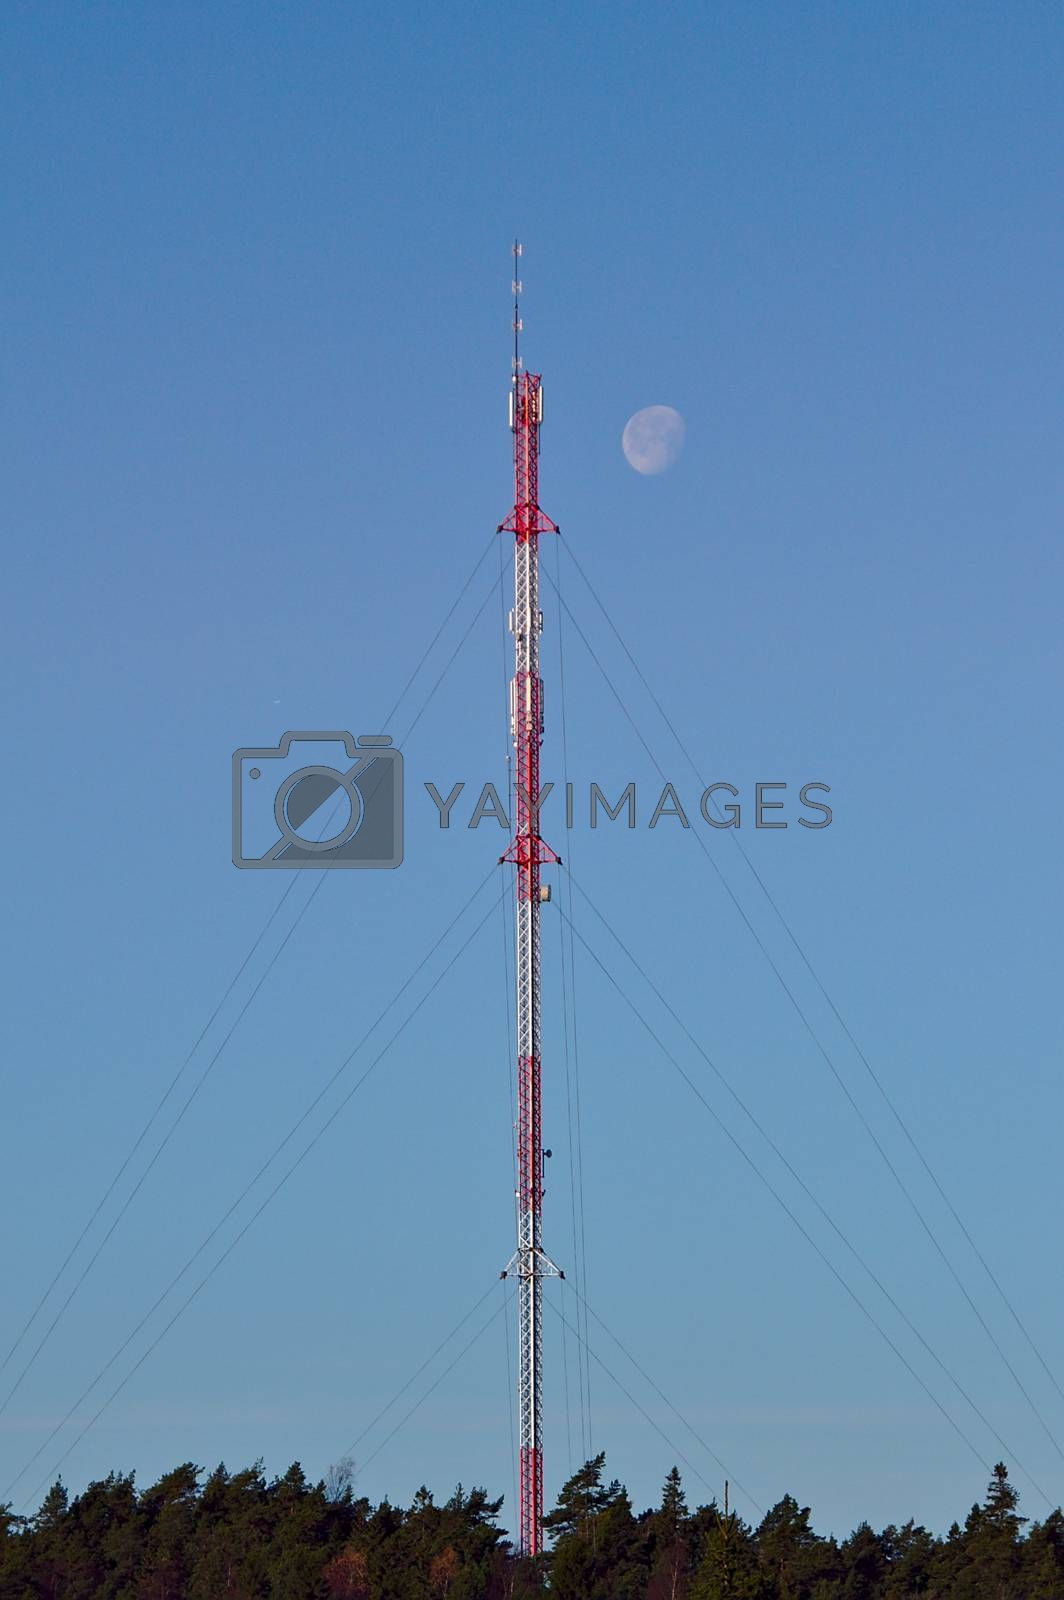 High red and white cellular tower at daytime with moon shining next to the top of the tower.